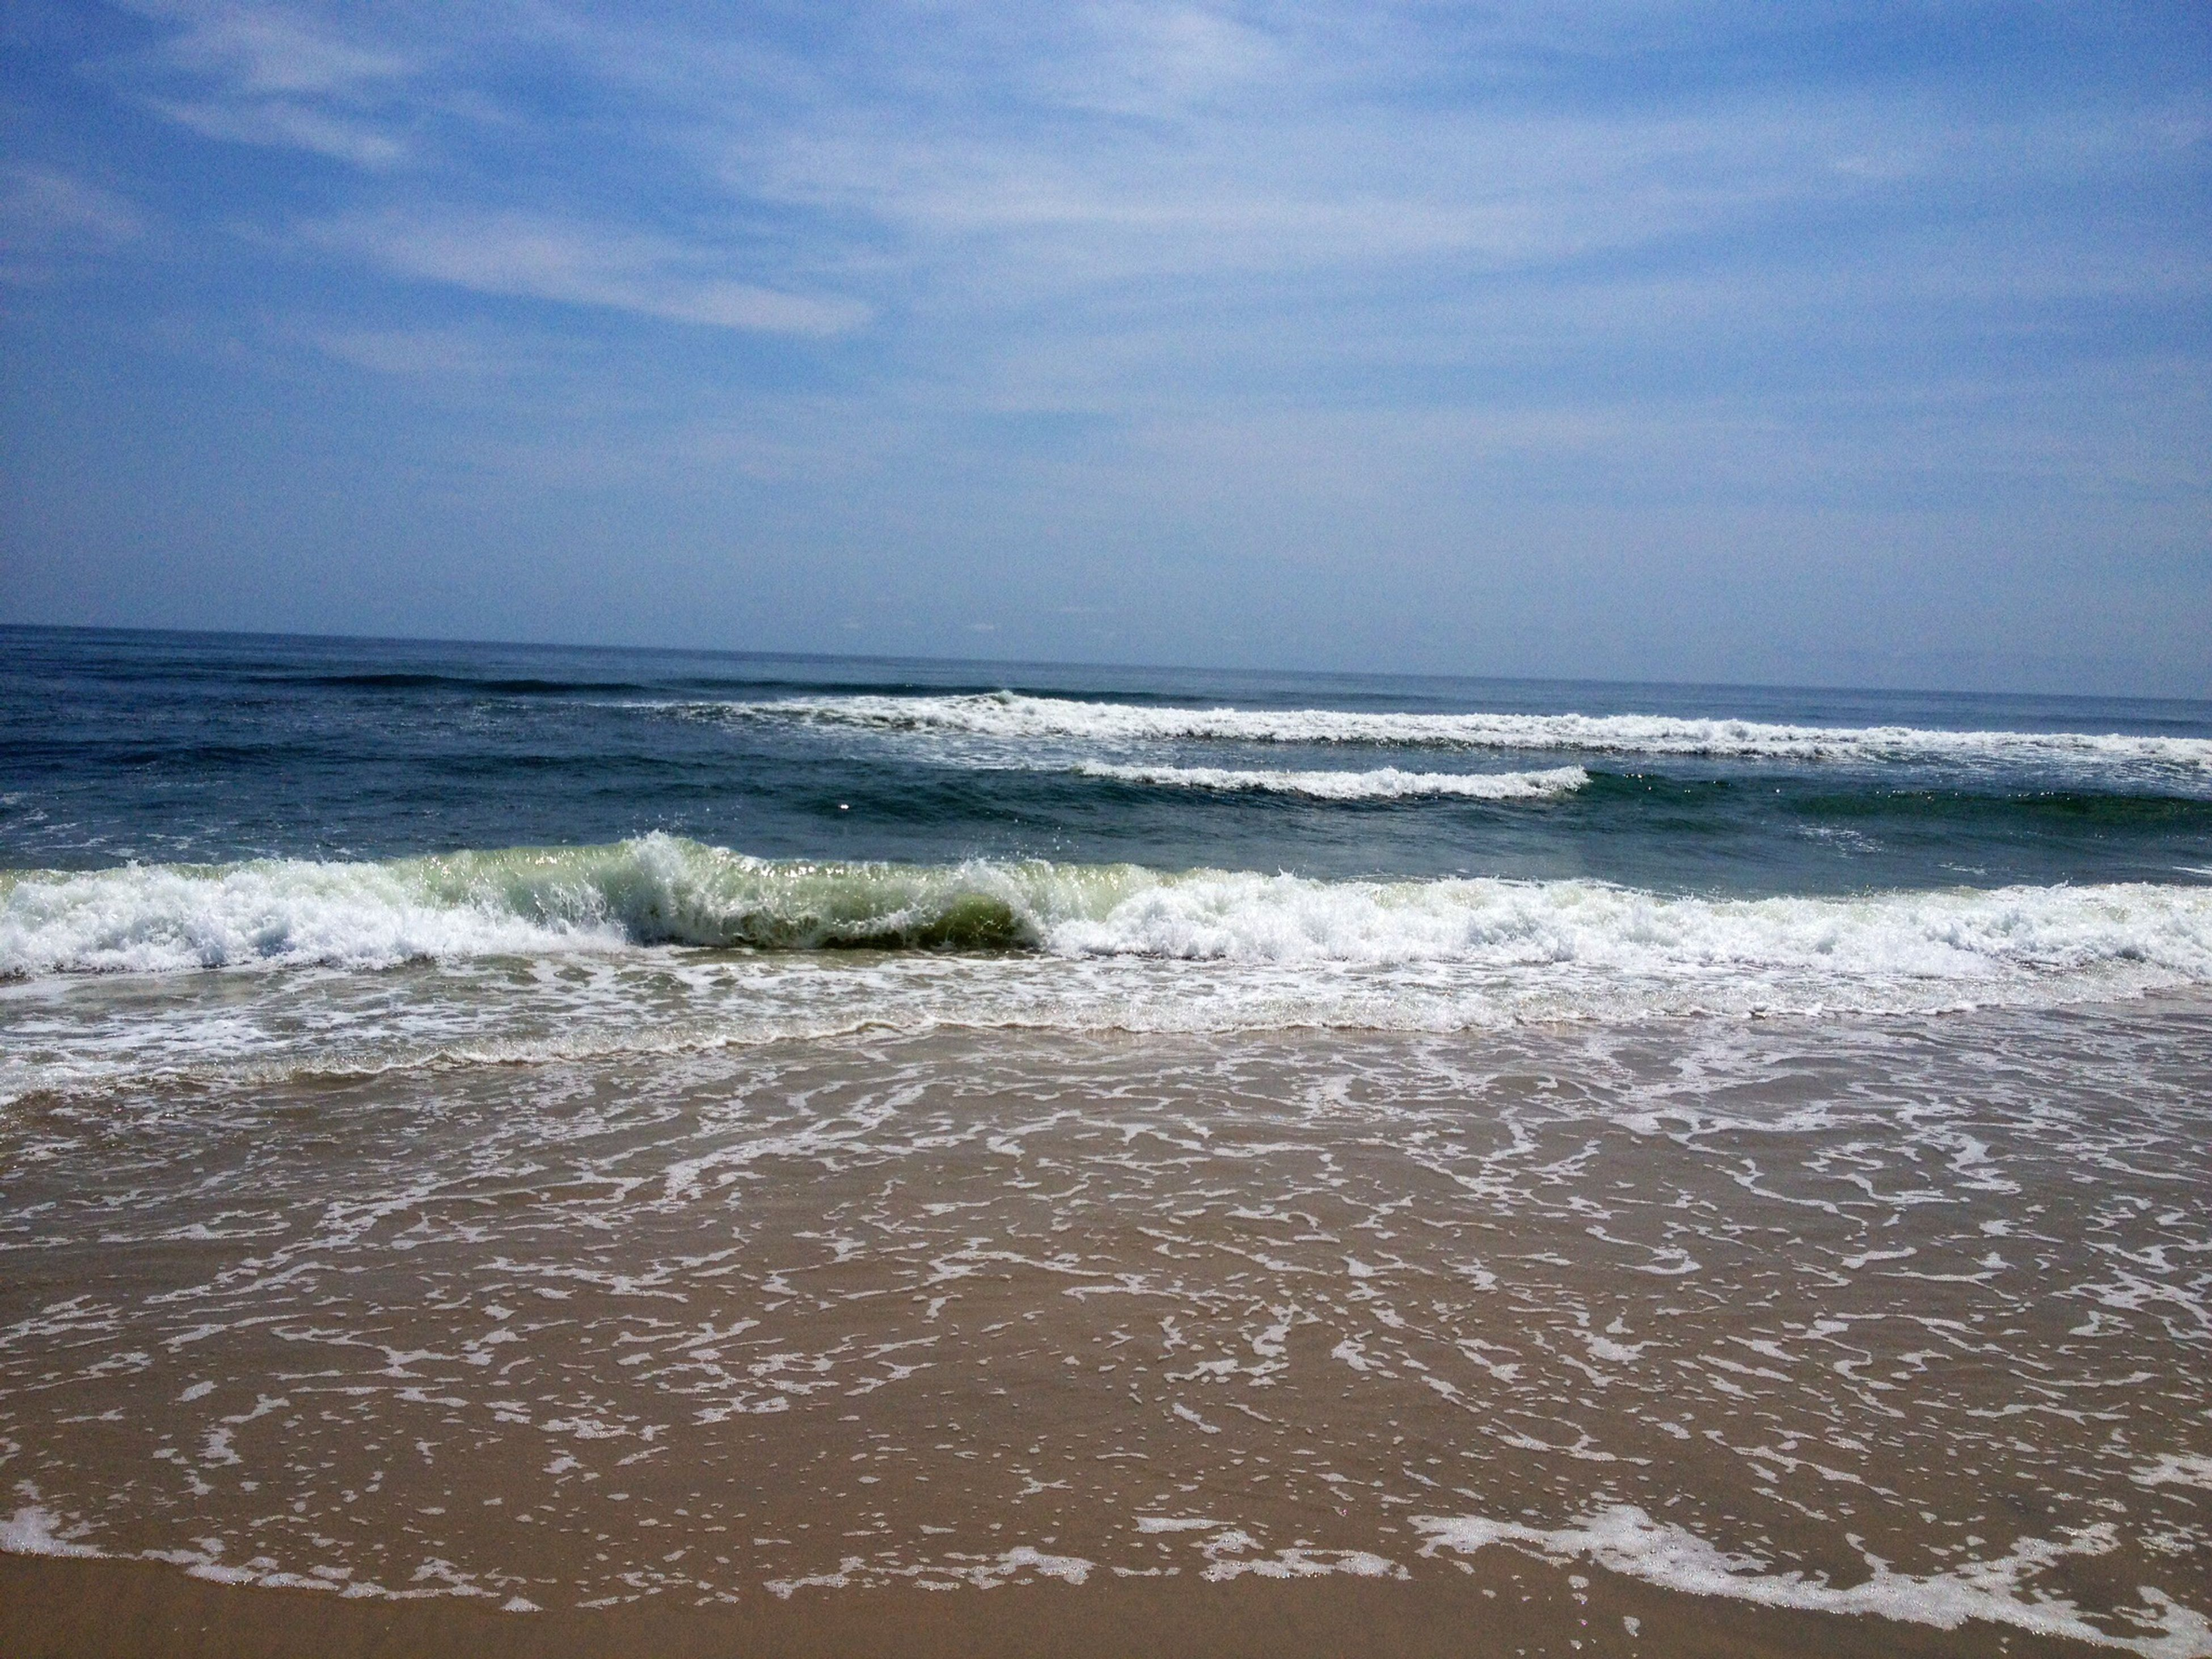 sea, water, horizon over water, beach, scenics, wave, surf, beauty in nature, shore, sky, tranquil scene, tranquility, nature, blue, idyllic, sand, vacations, motion, day, seascape